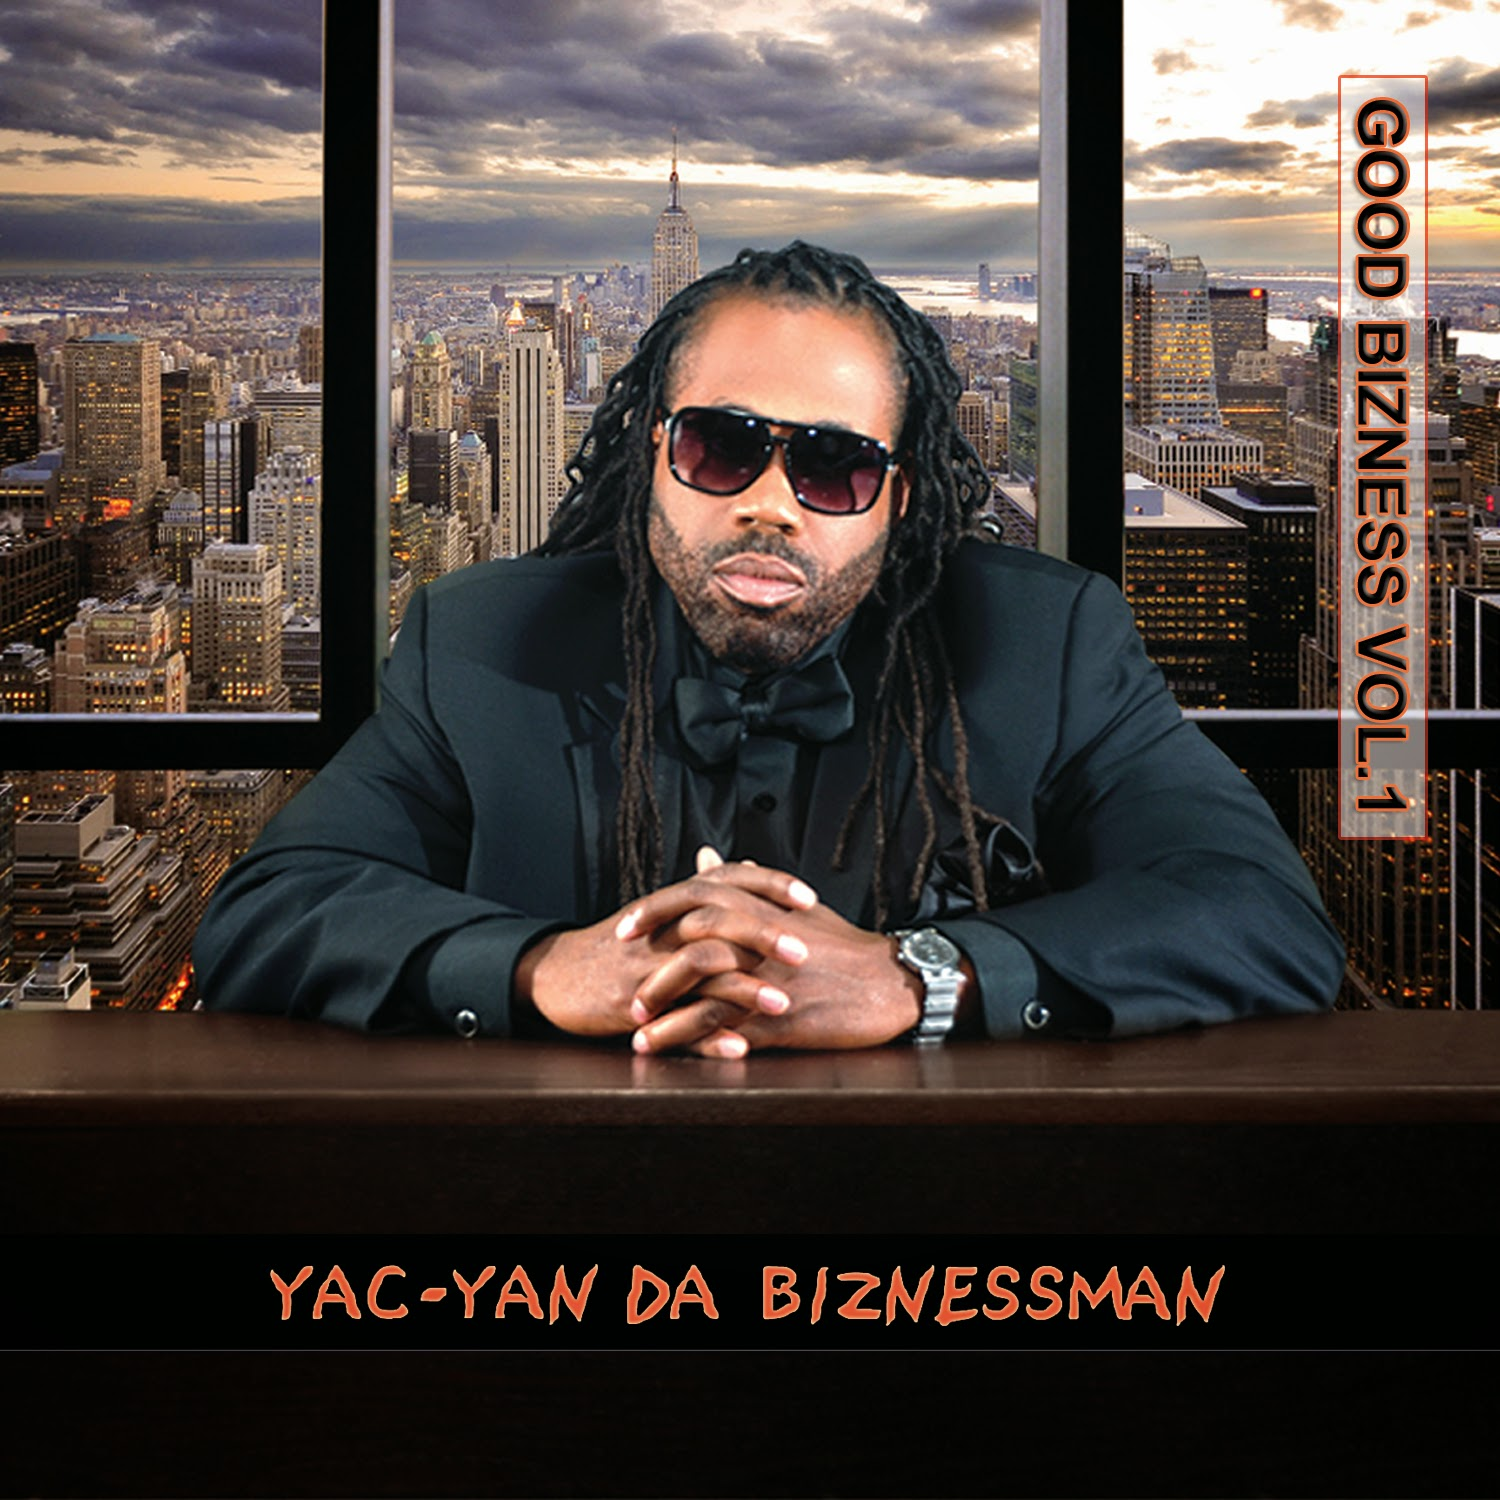 What Is Hip Hop? Yac-Yan Da Biznessman (Washington, DC - United States) - What Is HipHop